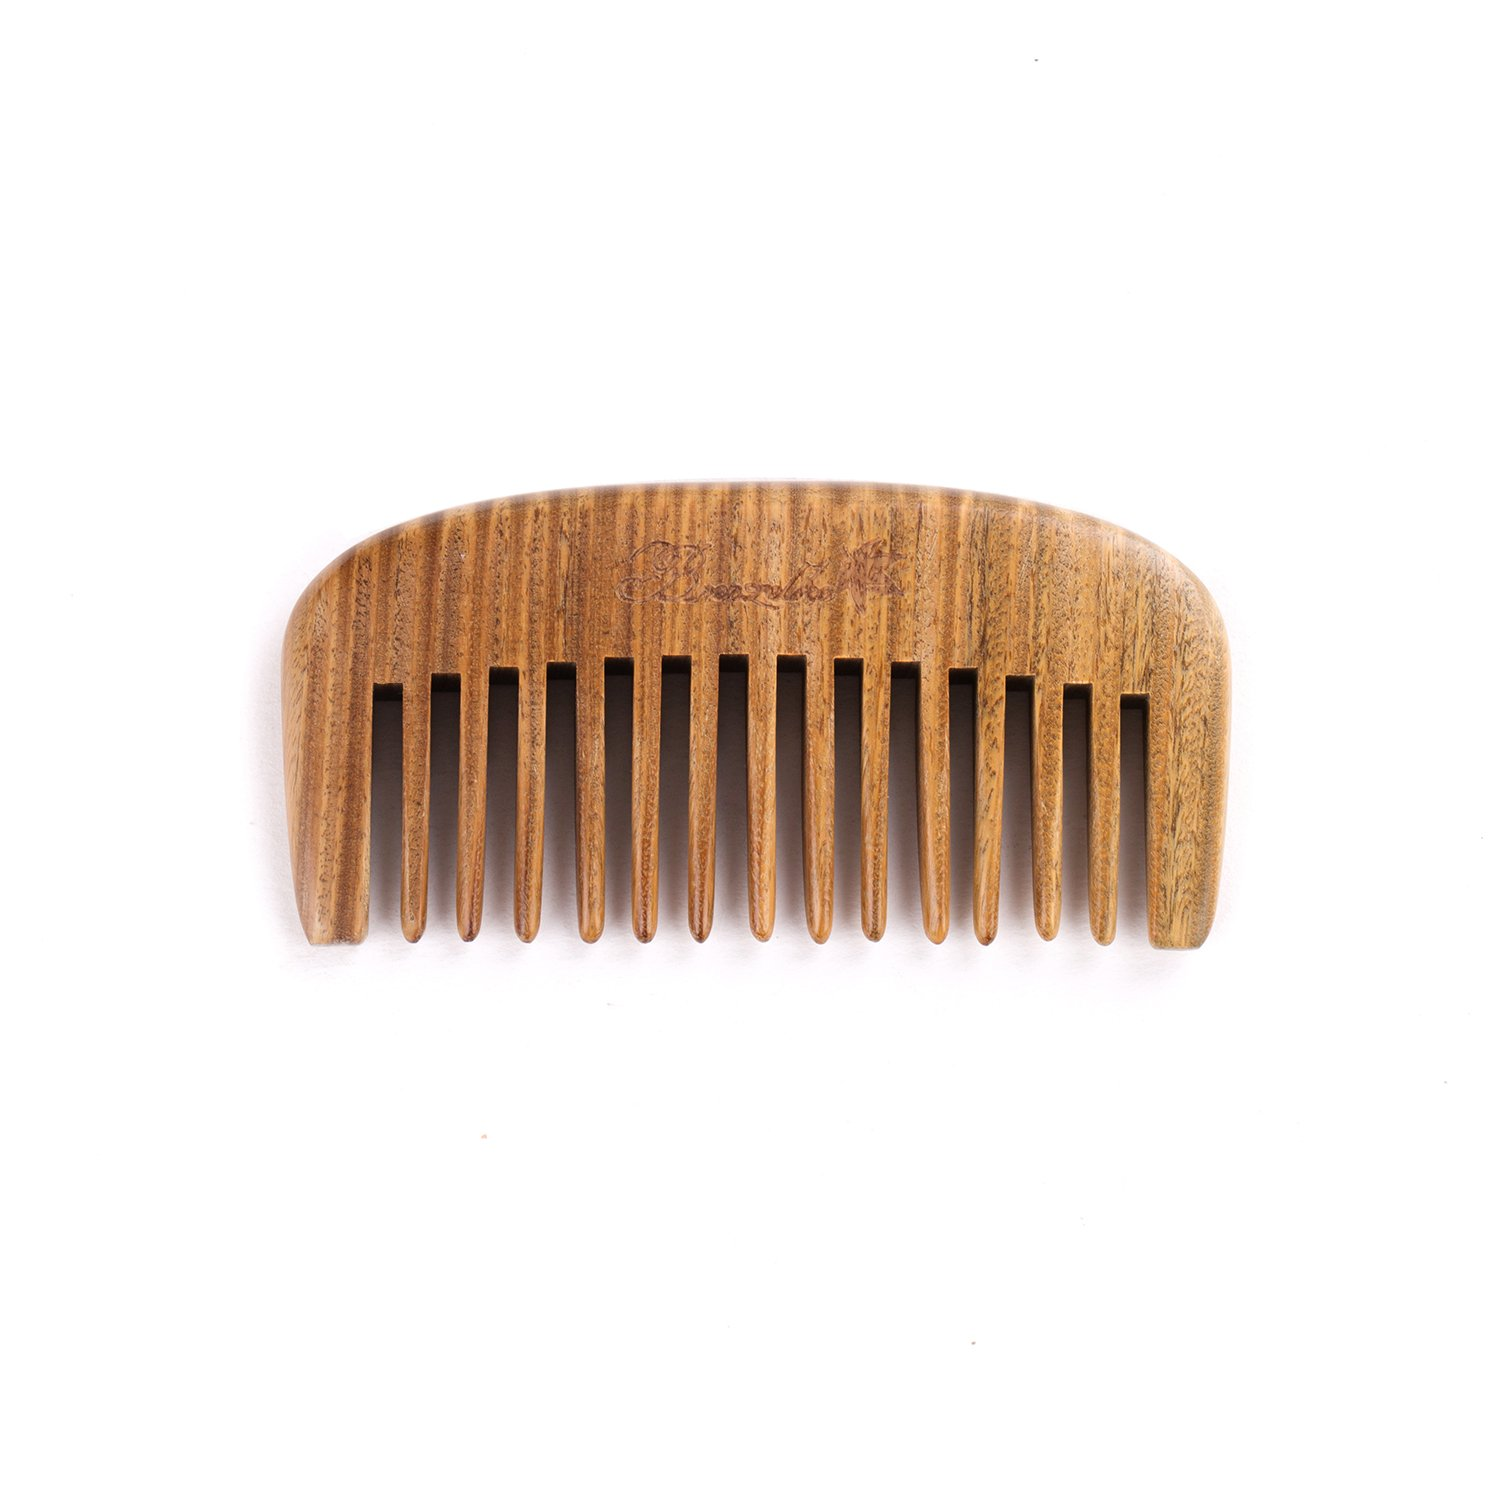 Breezelike Hair and Beard Comb - Wide Tooth Sandalwood Comb - No Static Pocket Size Wood Comb for Men, Women and Kids